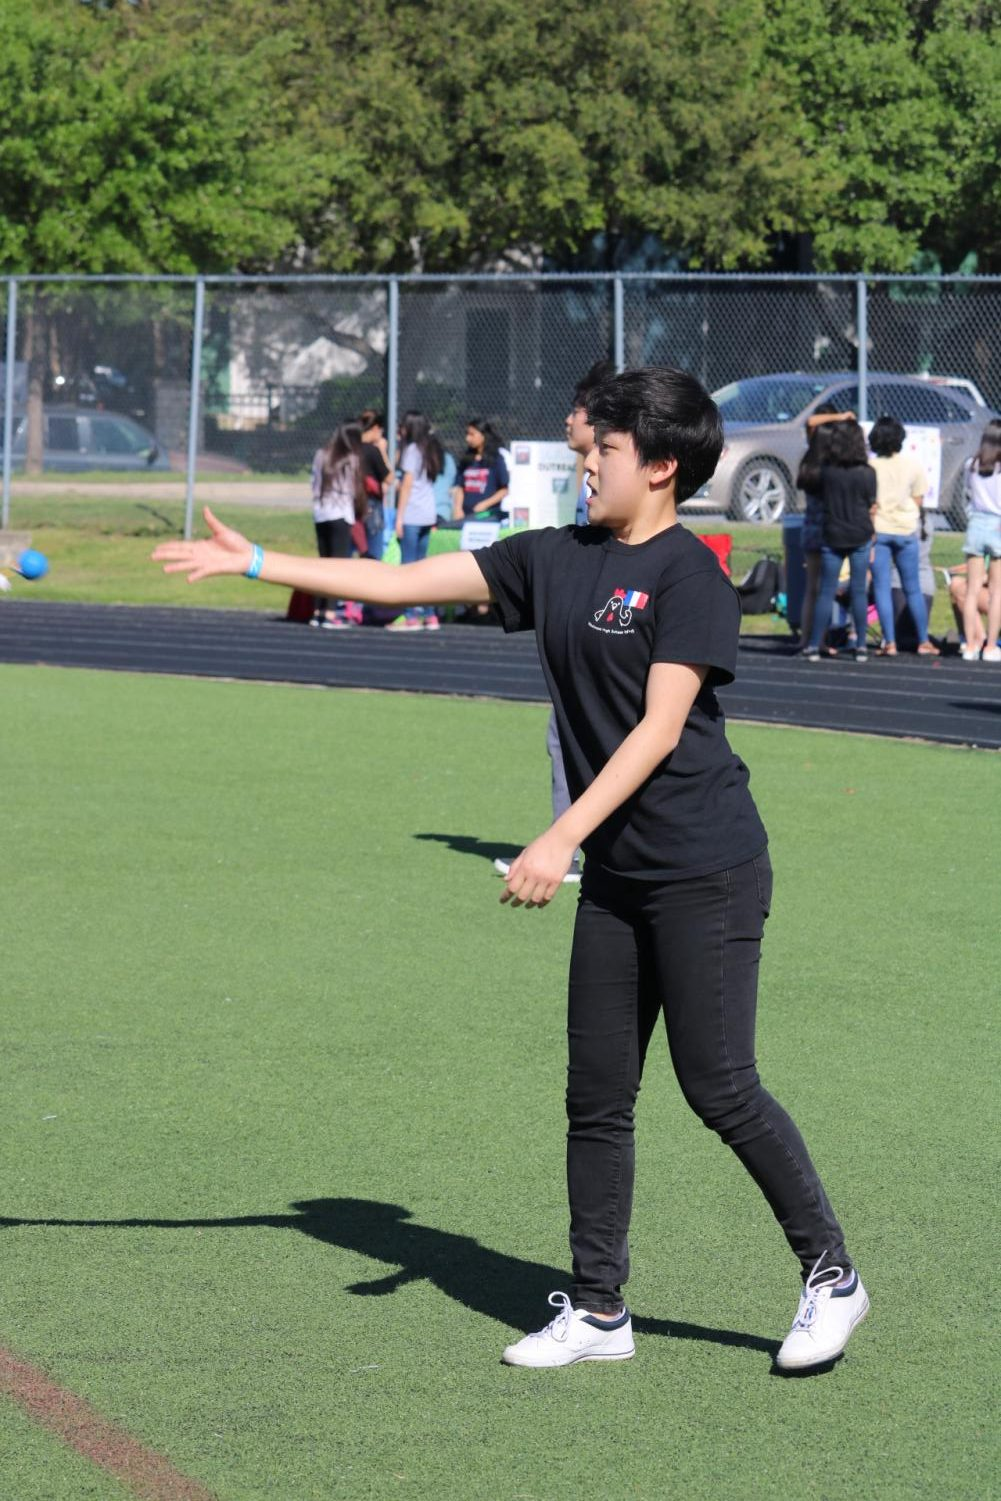 Sophia+Li+%2720+tosses+the+ball+towards+the+goal+to+score+a+point.+